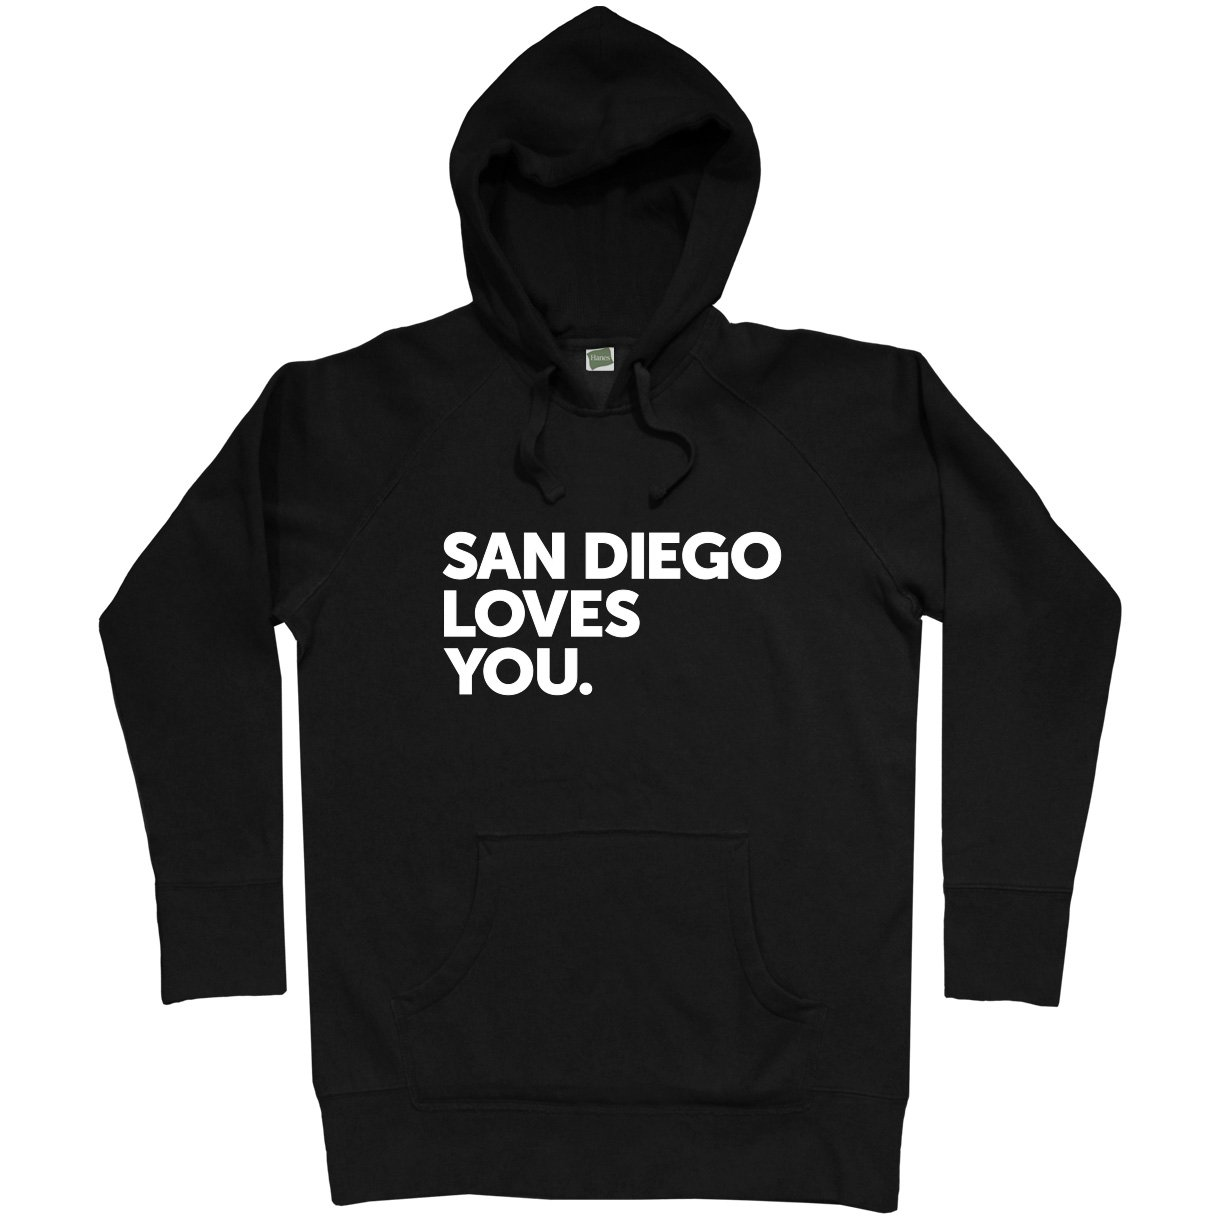 S San Diego Loves You Shirts